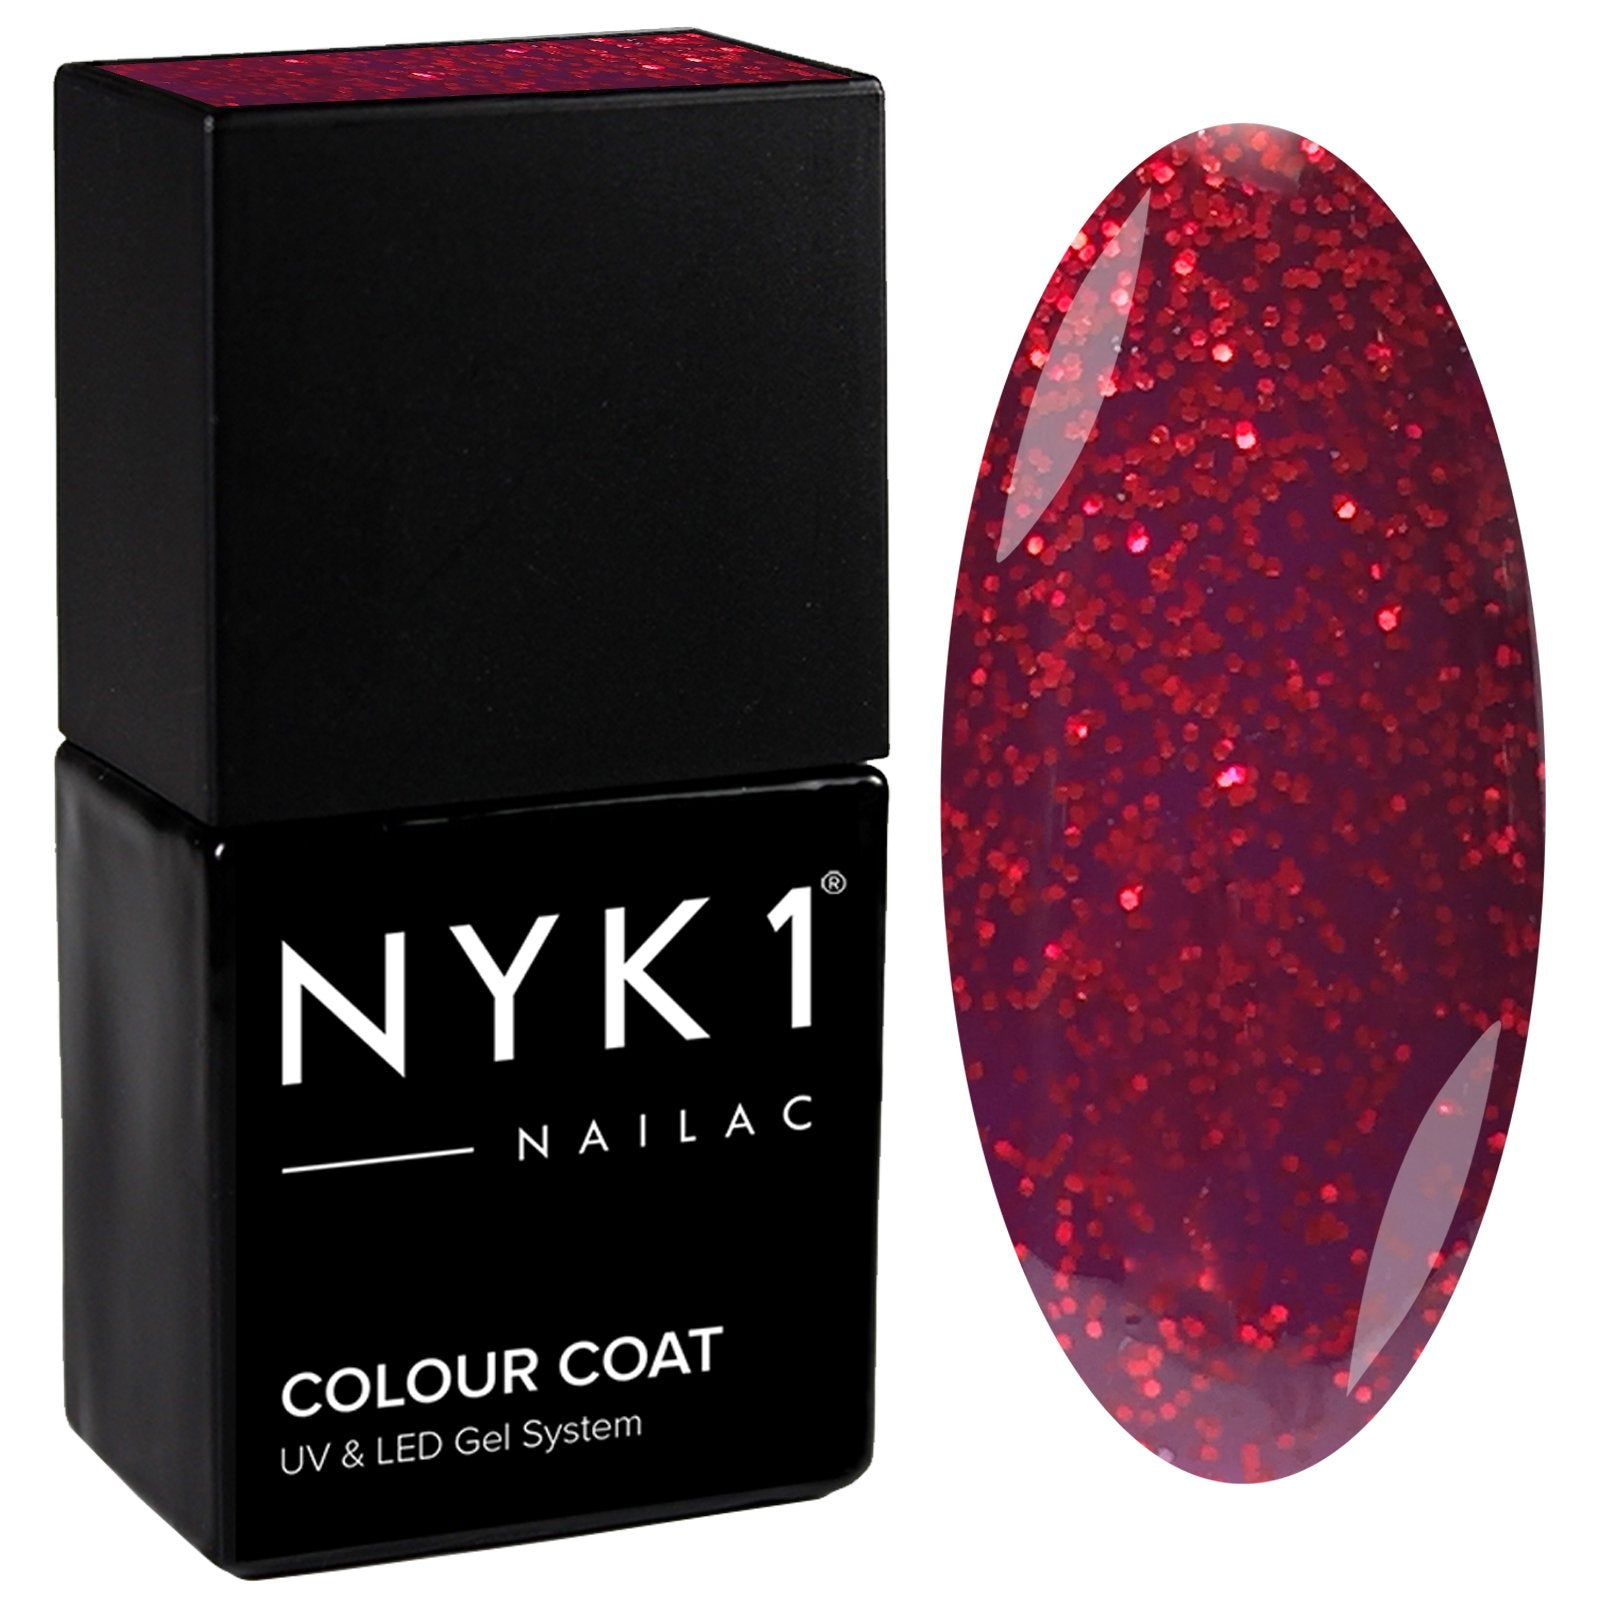 NYK1 Red Seduction Glitter Sparkle Gel Nail Polish